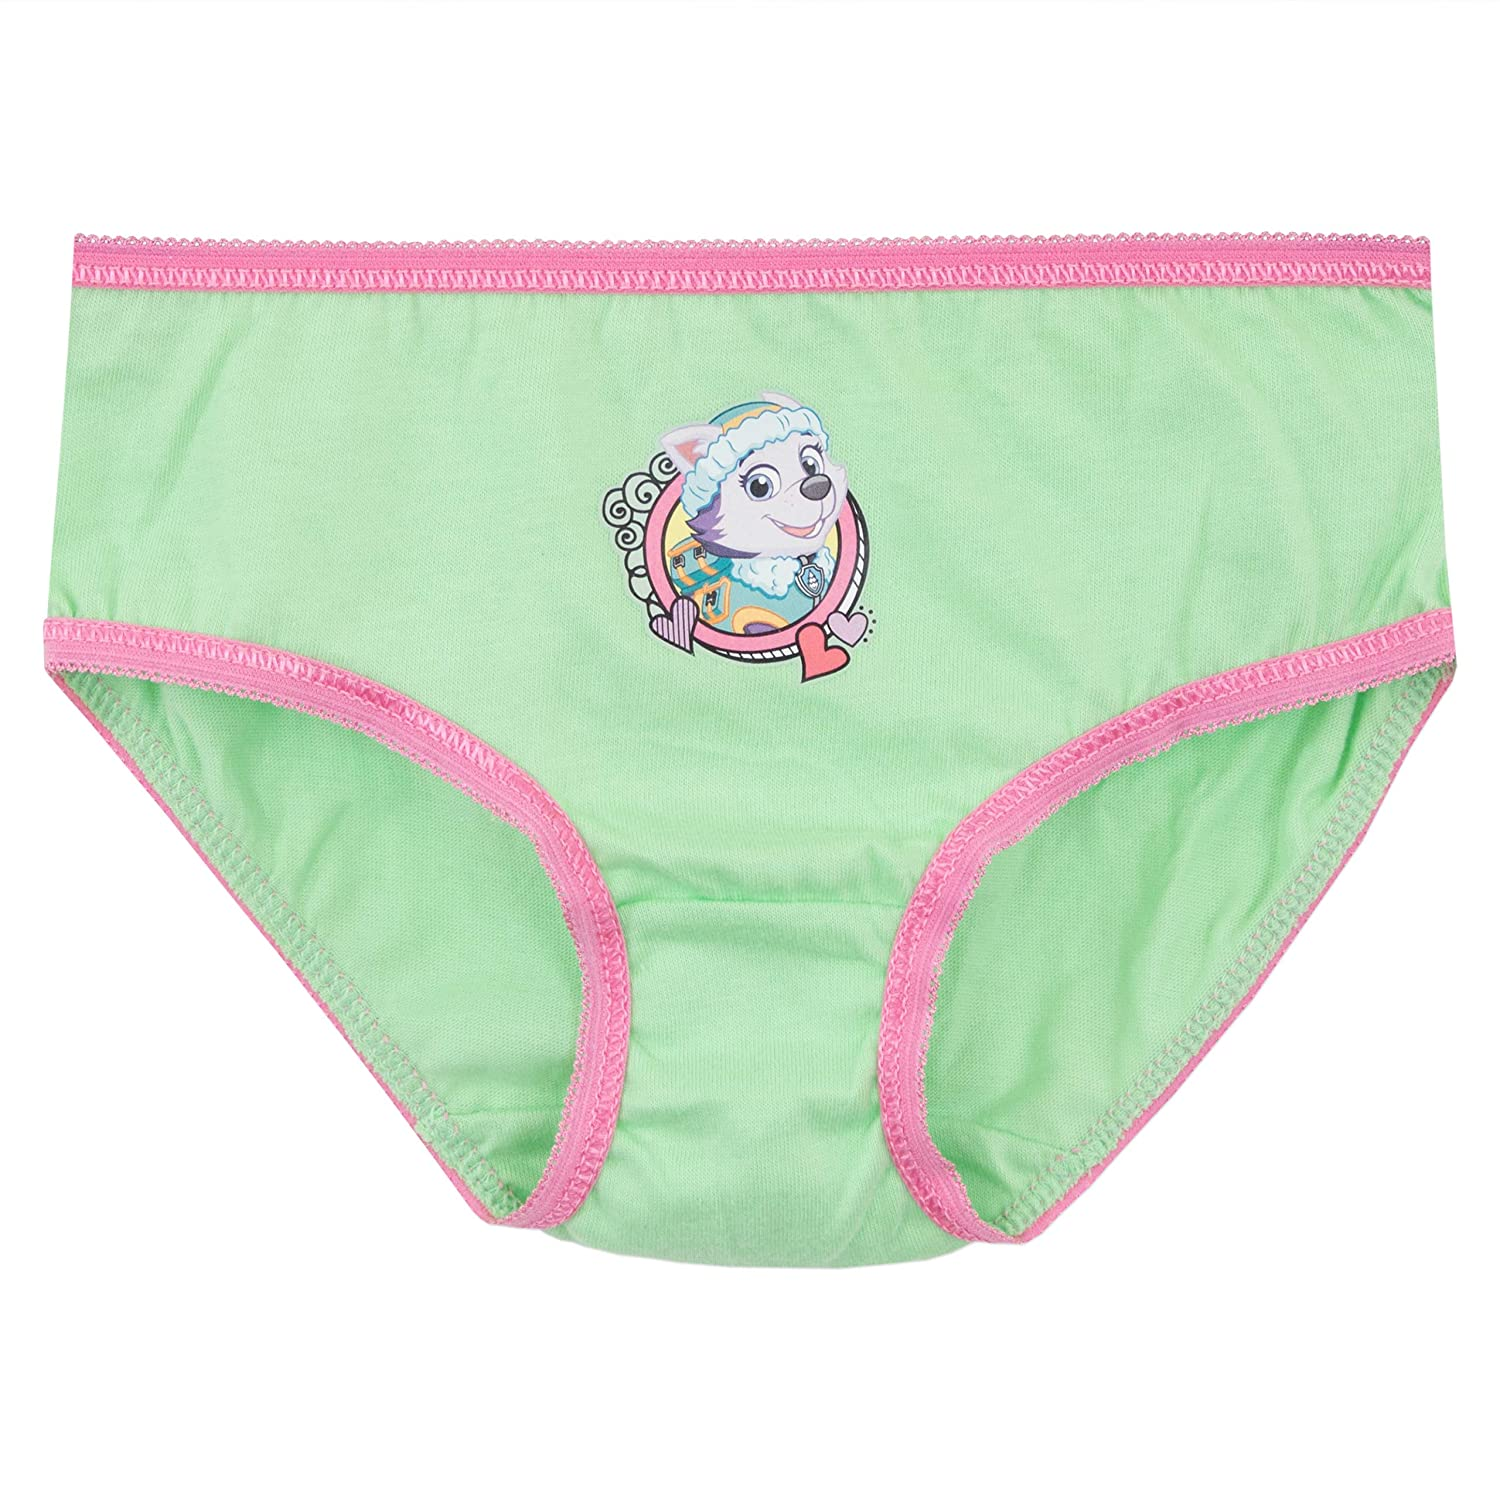 Paw Patrol Girls Skye and Everest Knickers Pack of 3